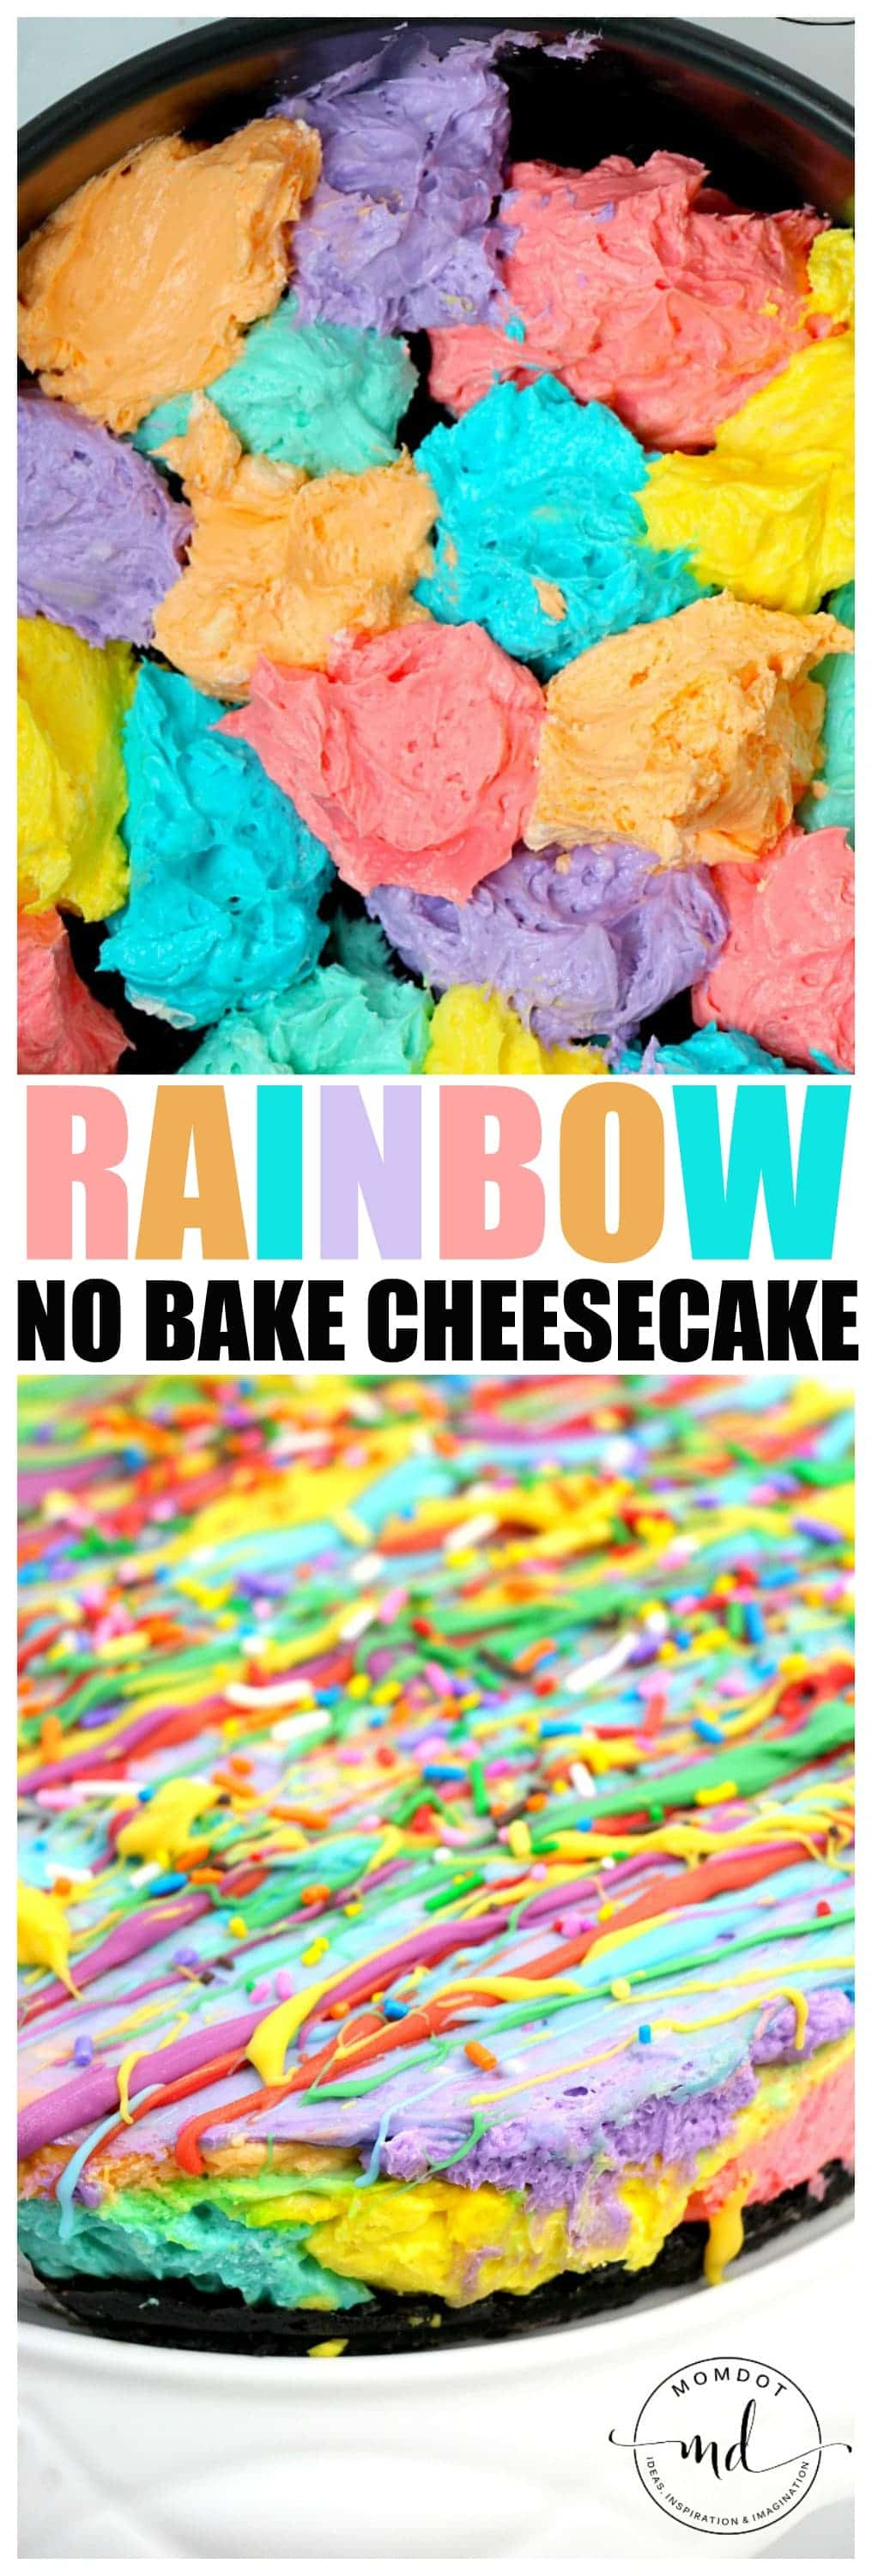 No Bake Rainbow Cheesecake : Easy No Bake Cheesecake Dessert, simple and striking!